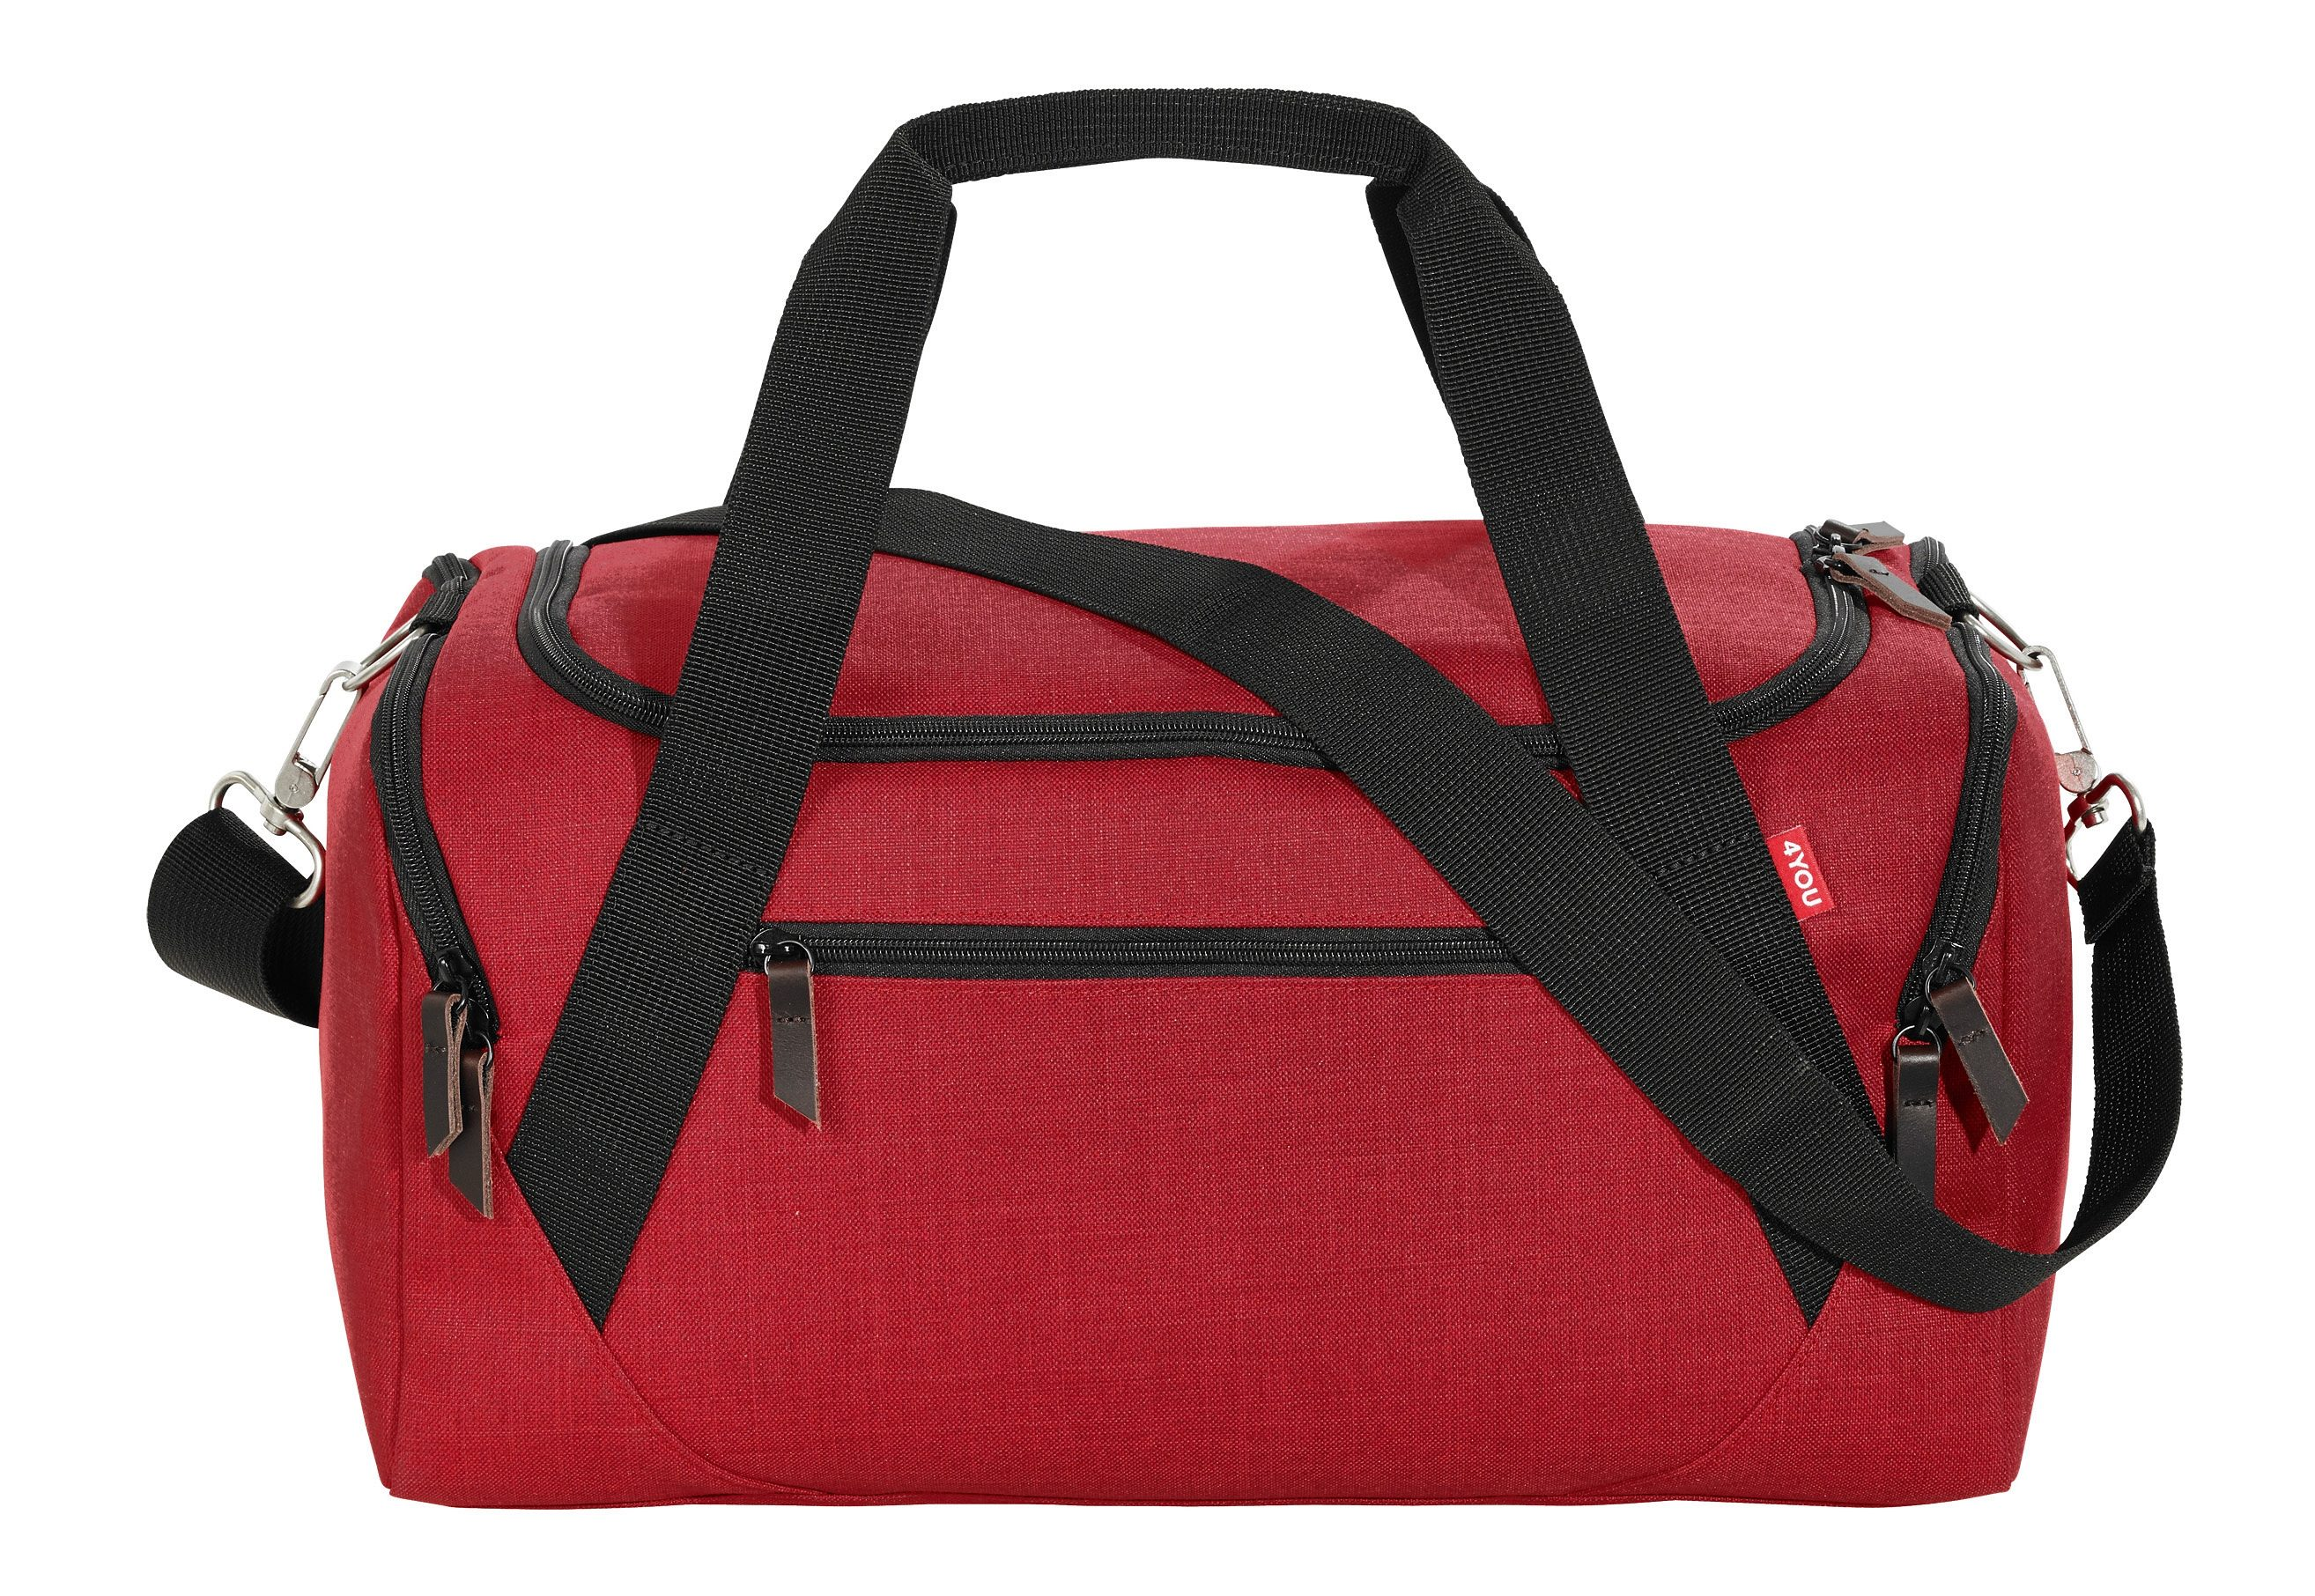 4YOU Sporttasche, Soft Red, »Sportbag«